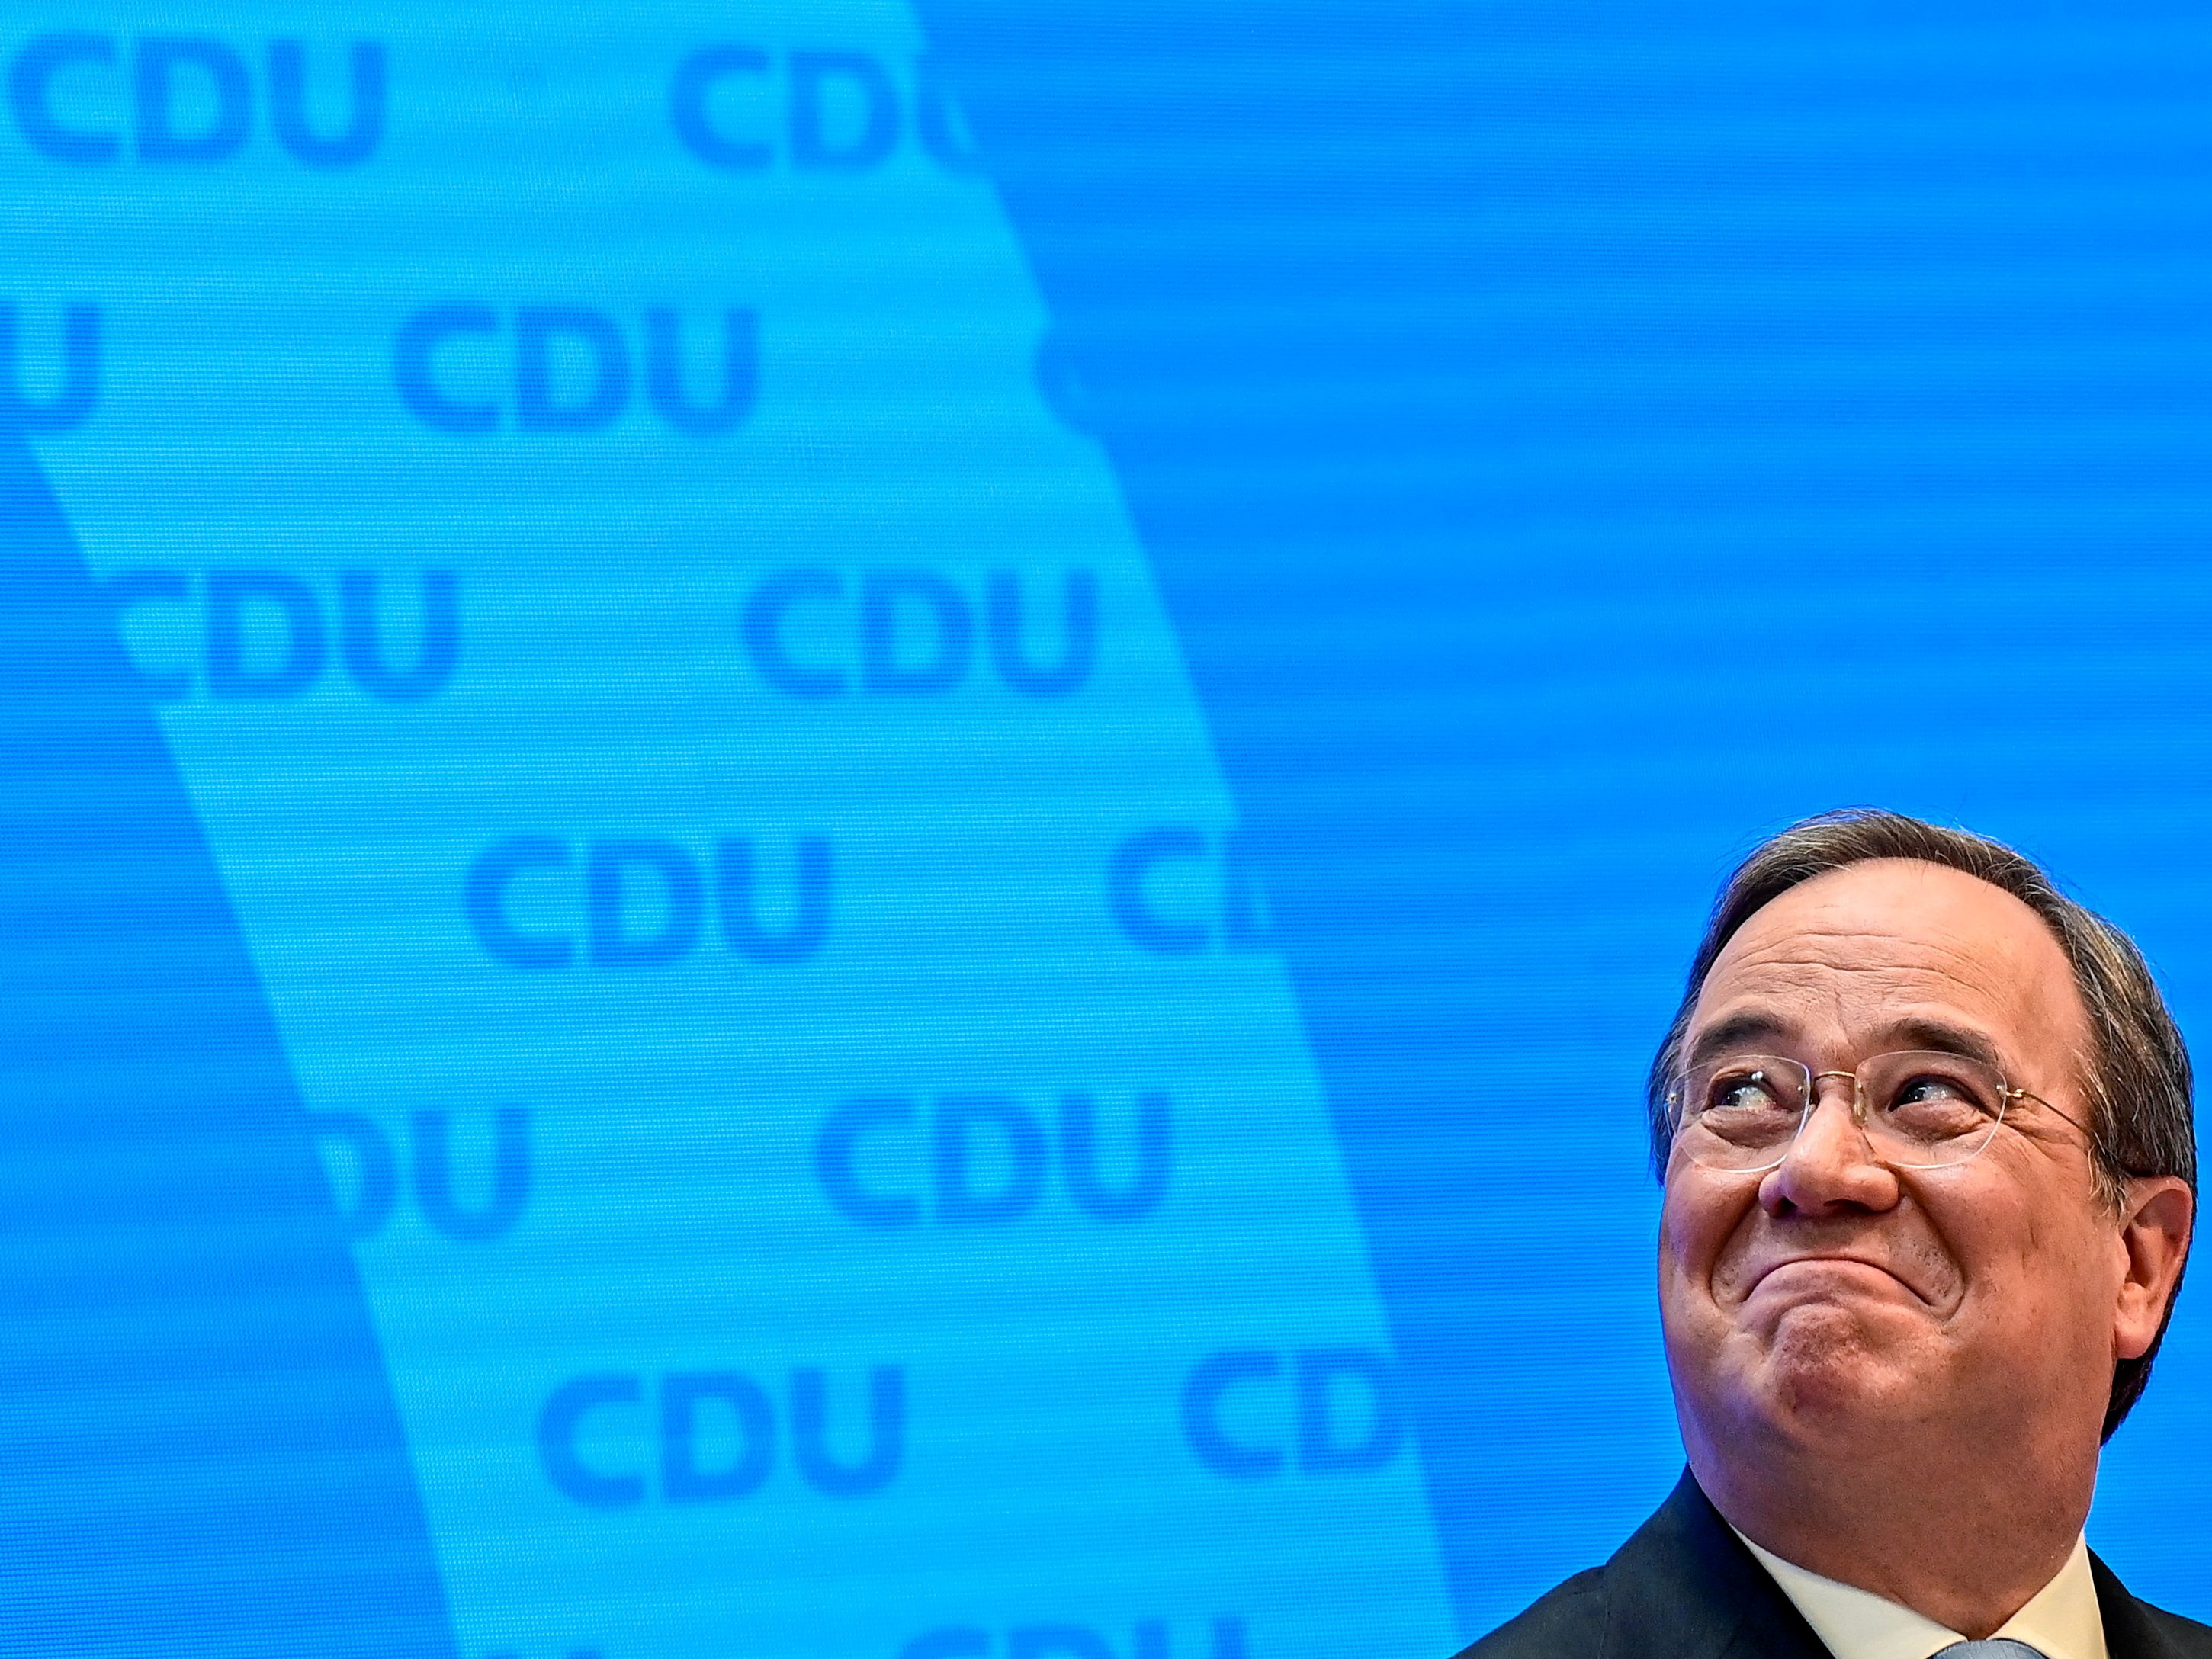 North Rhine-Westphalia's State Premier and head of Christian Democratic Union (CDU) party Armin Laschet gives a news conference at the CDU headquarters in Berlin, Germany April 20, 2021.  Tobias Schwarz/Pool via REUTERS/File Photo